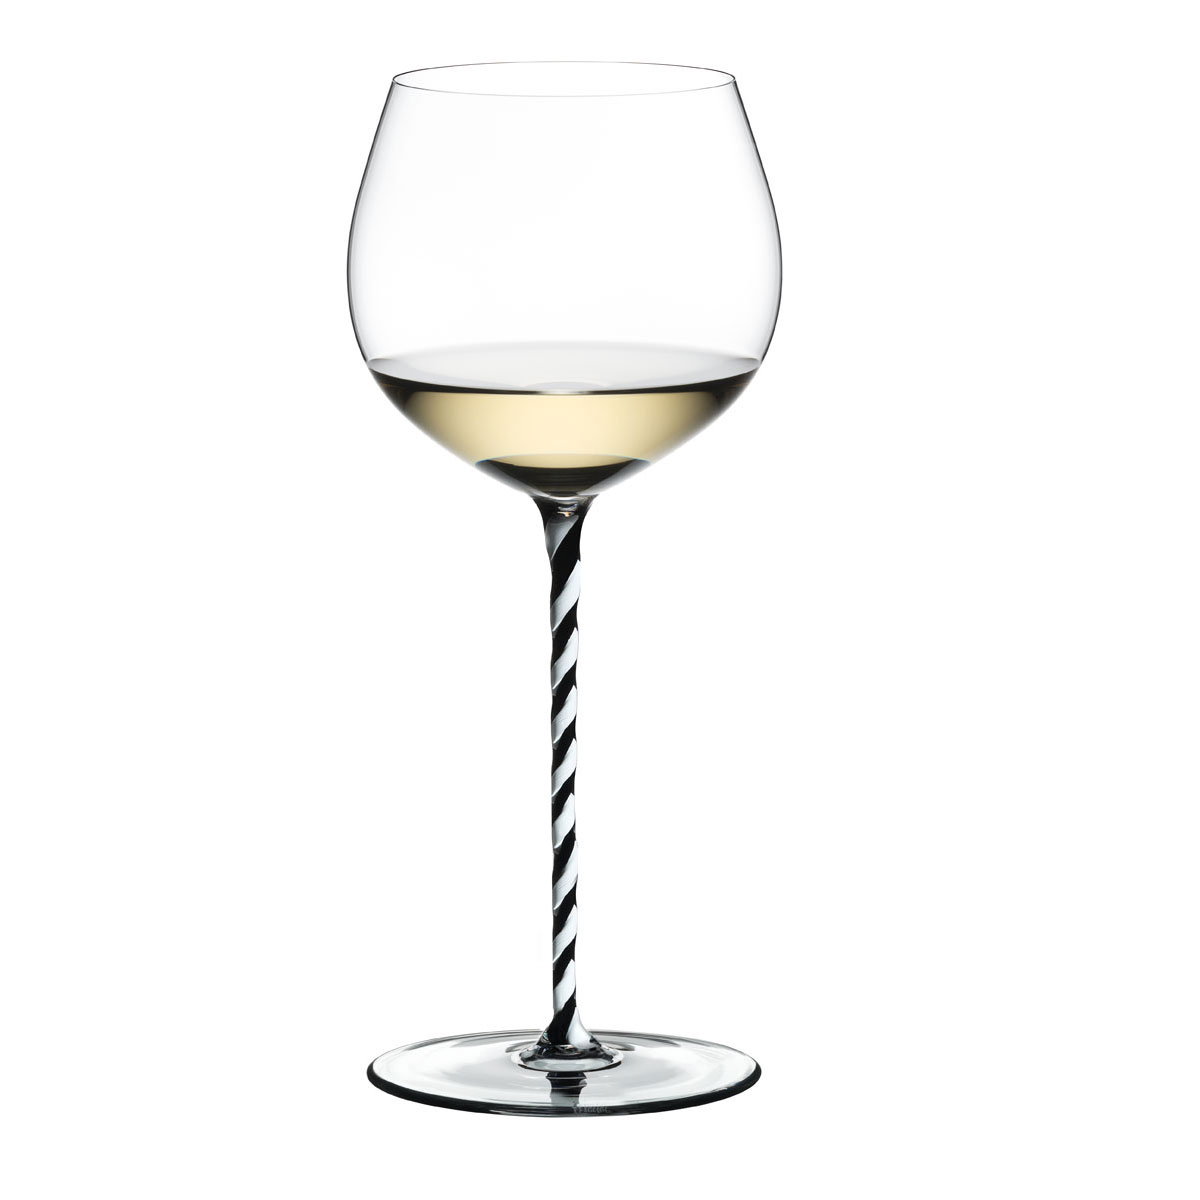 Riedel Fatto A Mano, Oaked Chardonnay, Black and White Twist Wine Glass